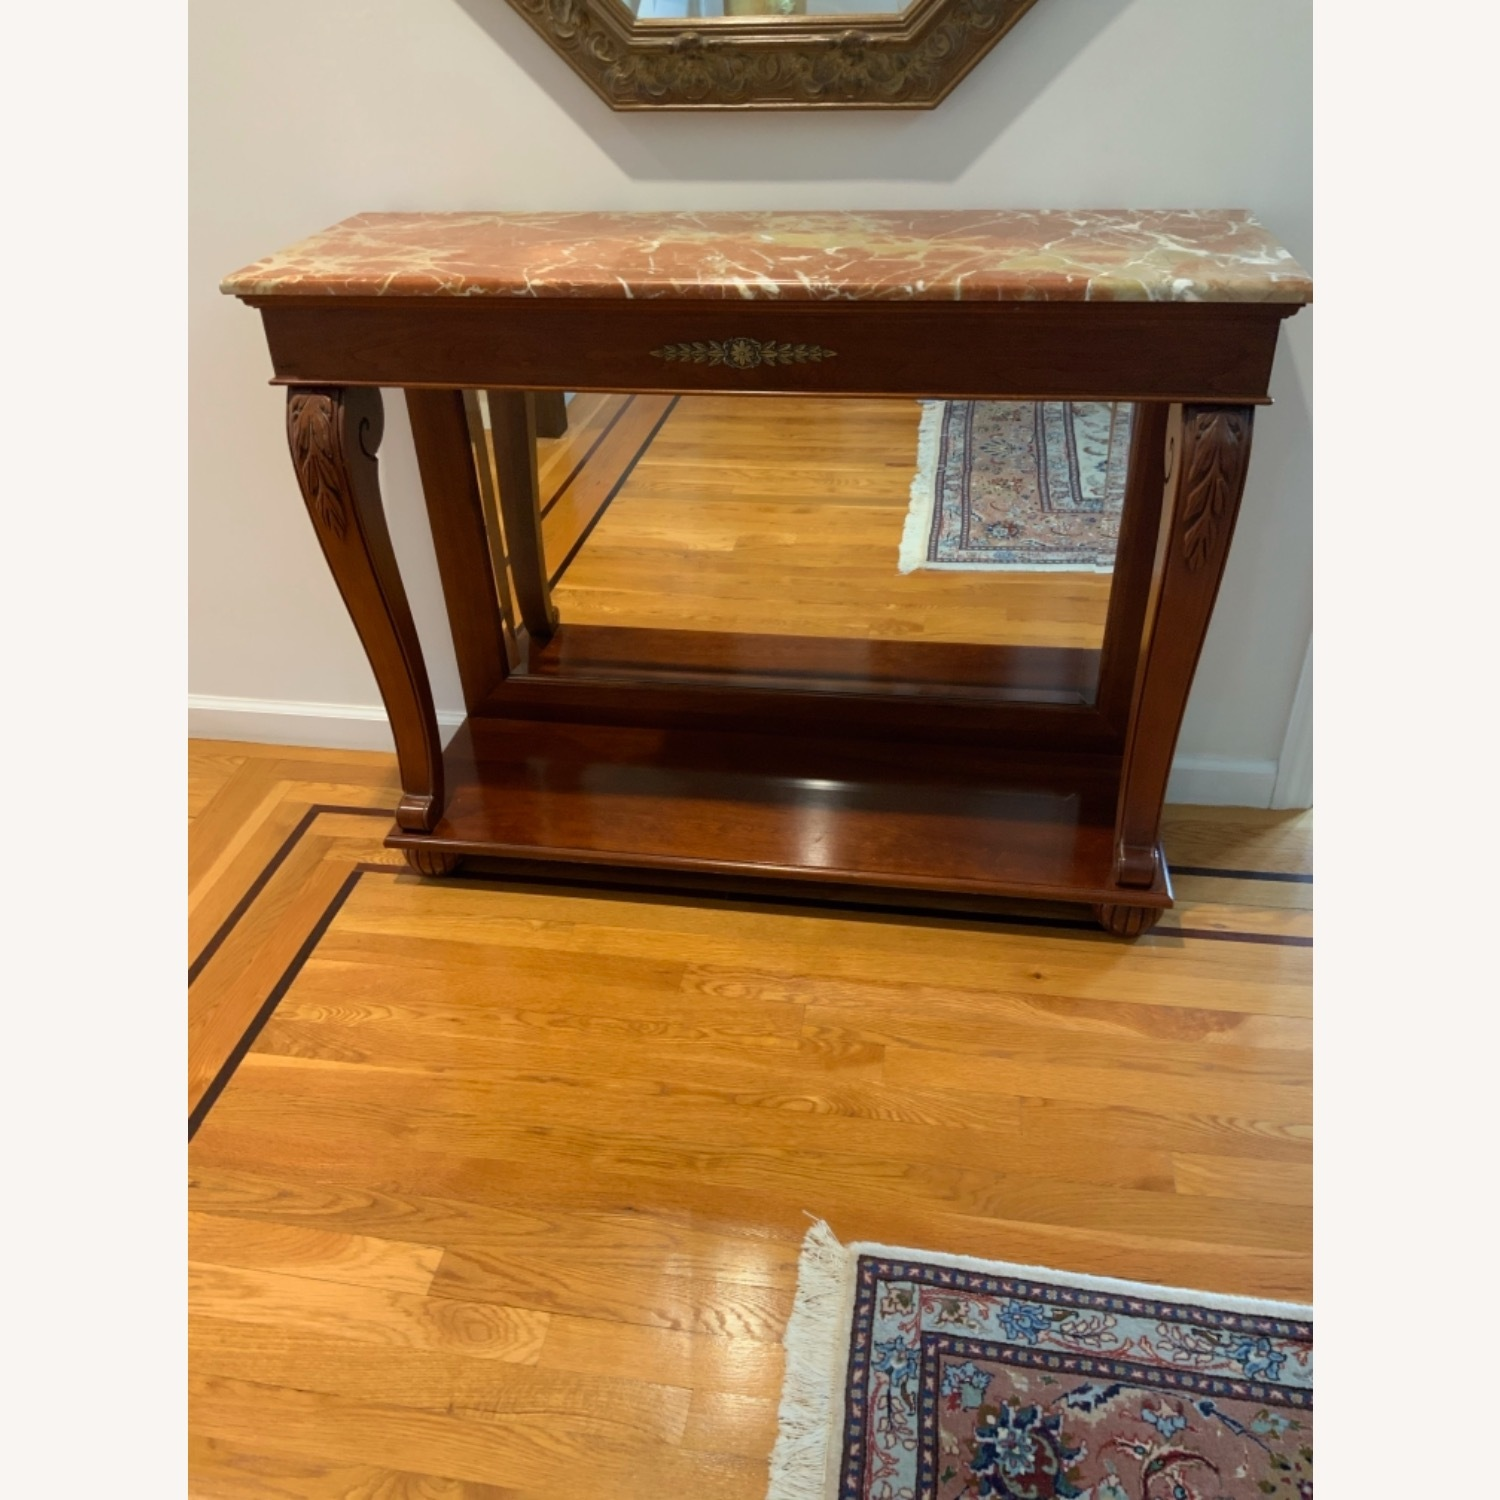 Ethan Allen Marble Console Table - image-1